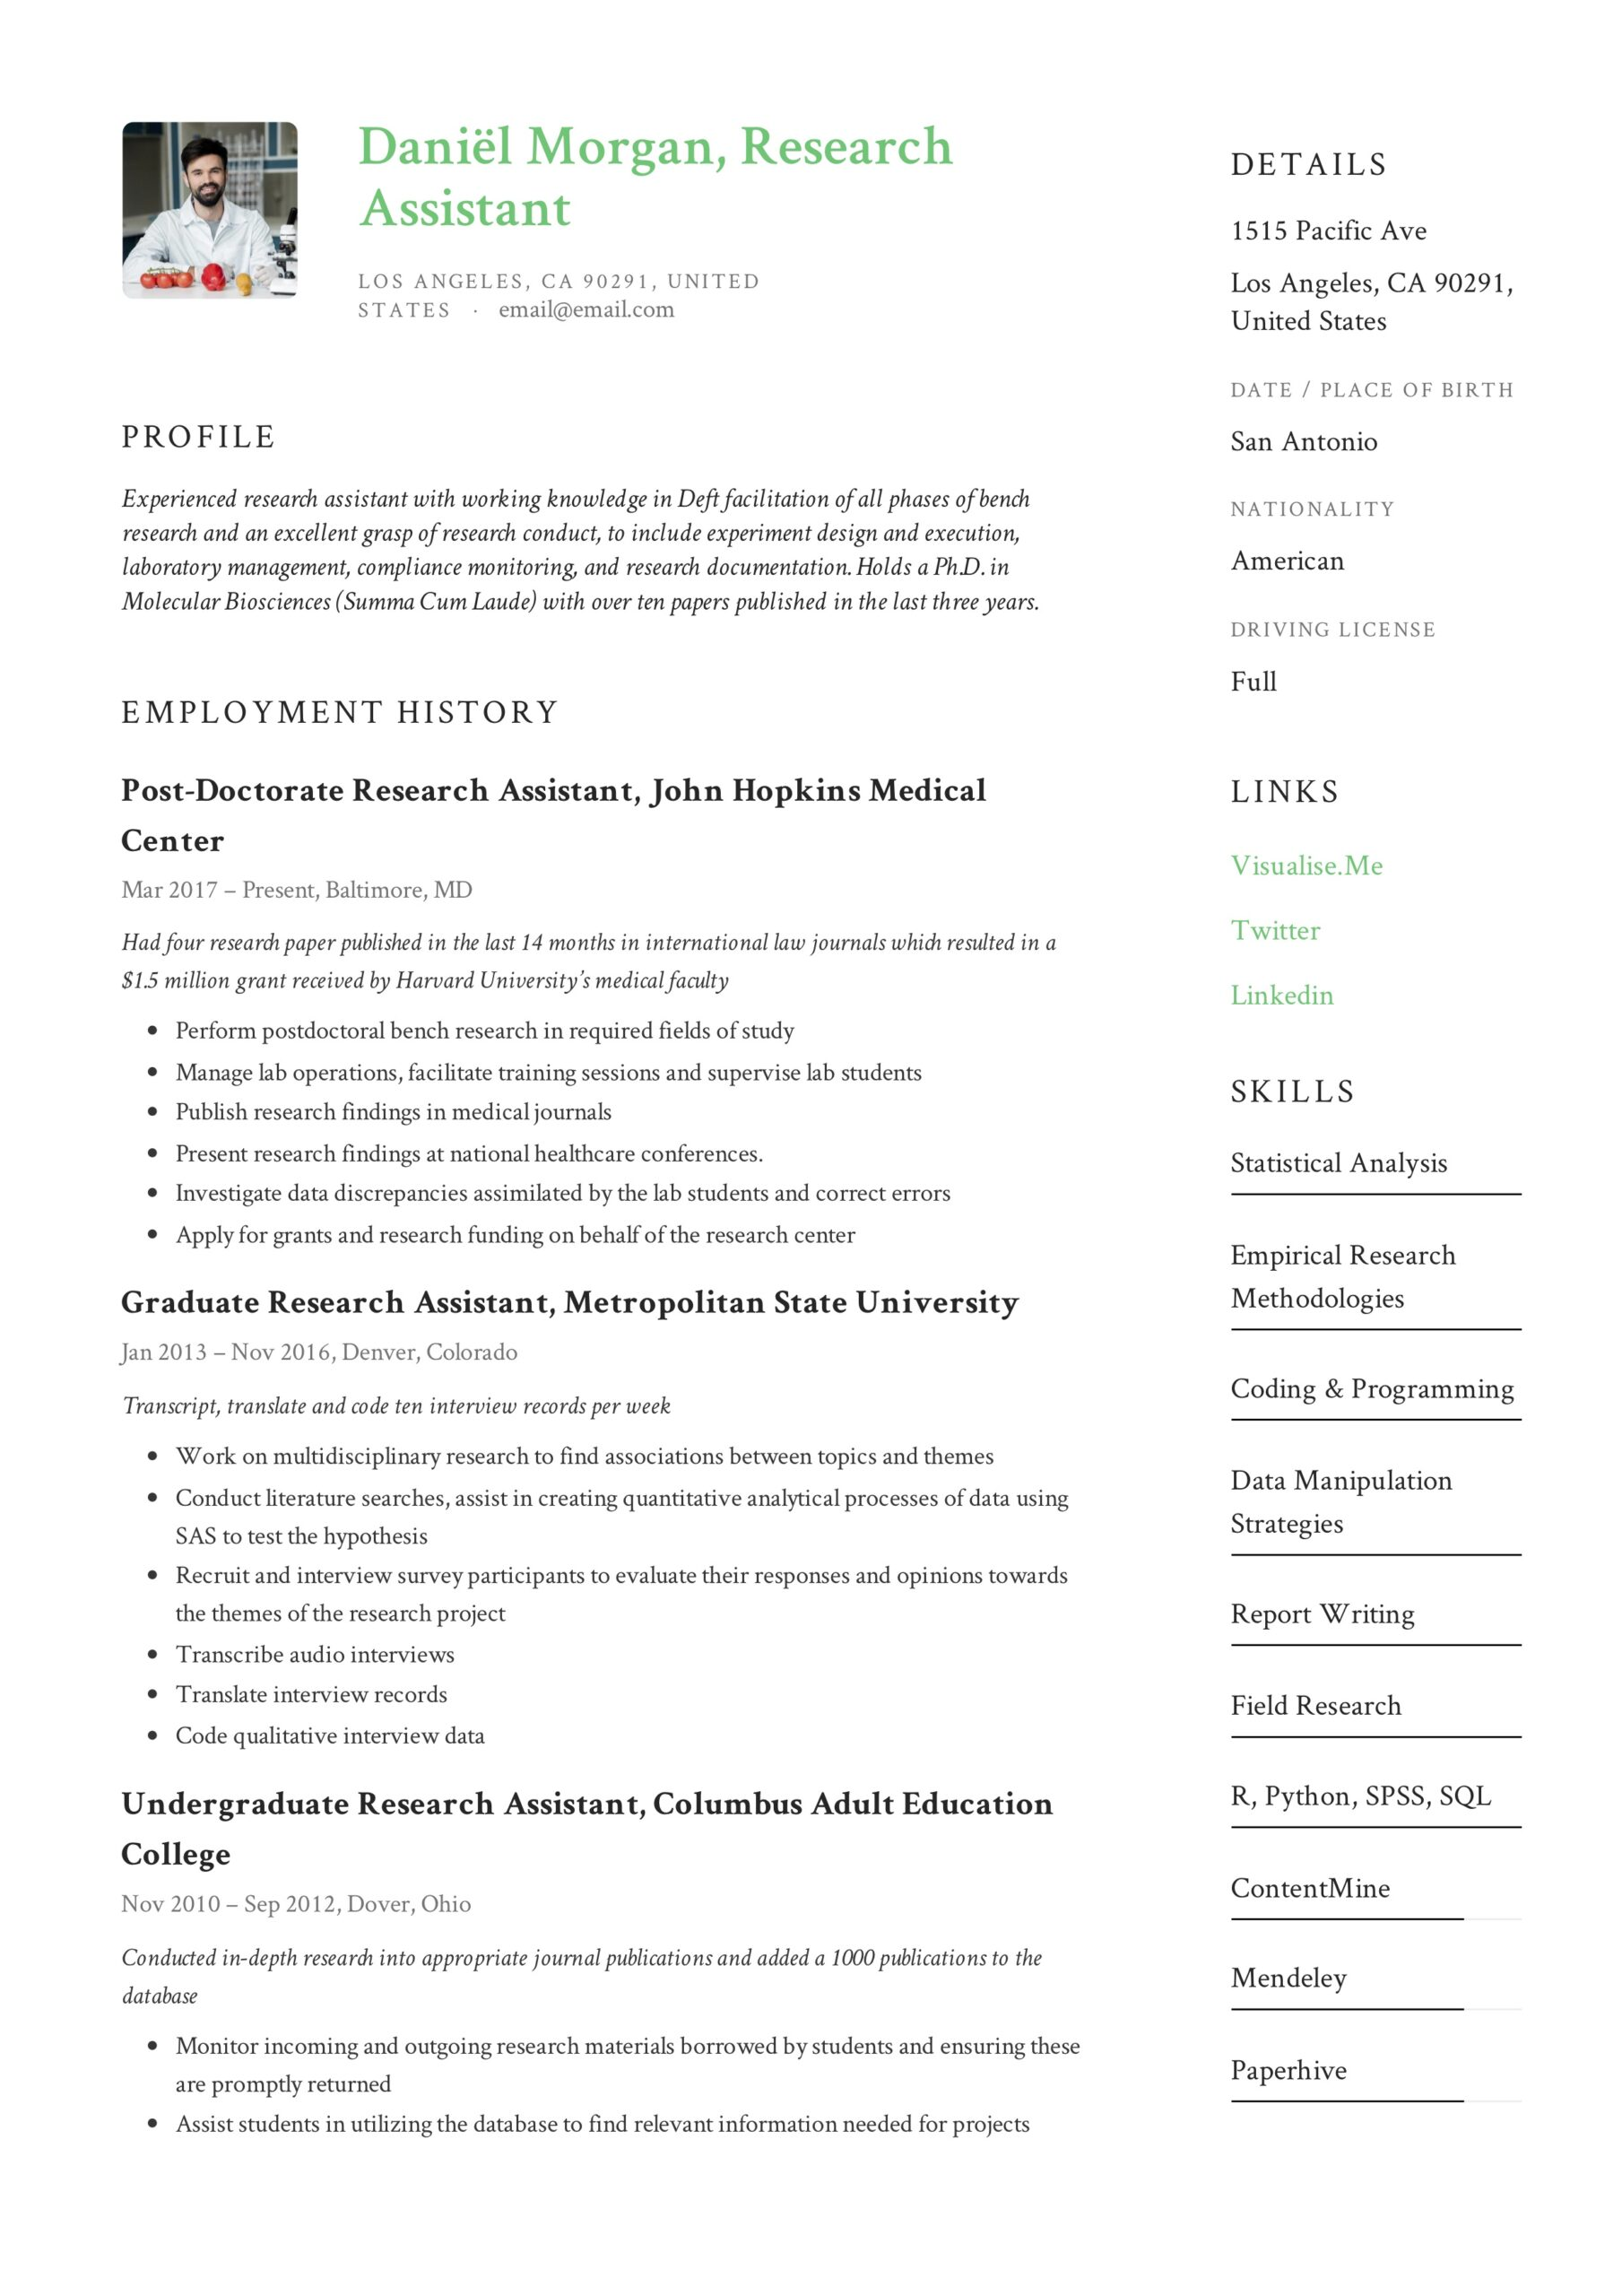 research assistant resume writing guide examples paper publications and presentations Resume Paper Publications And Presentations Resume